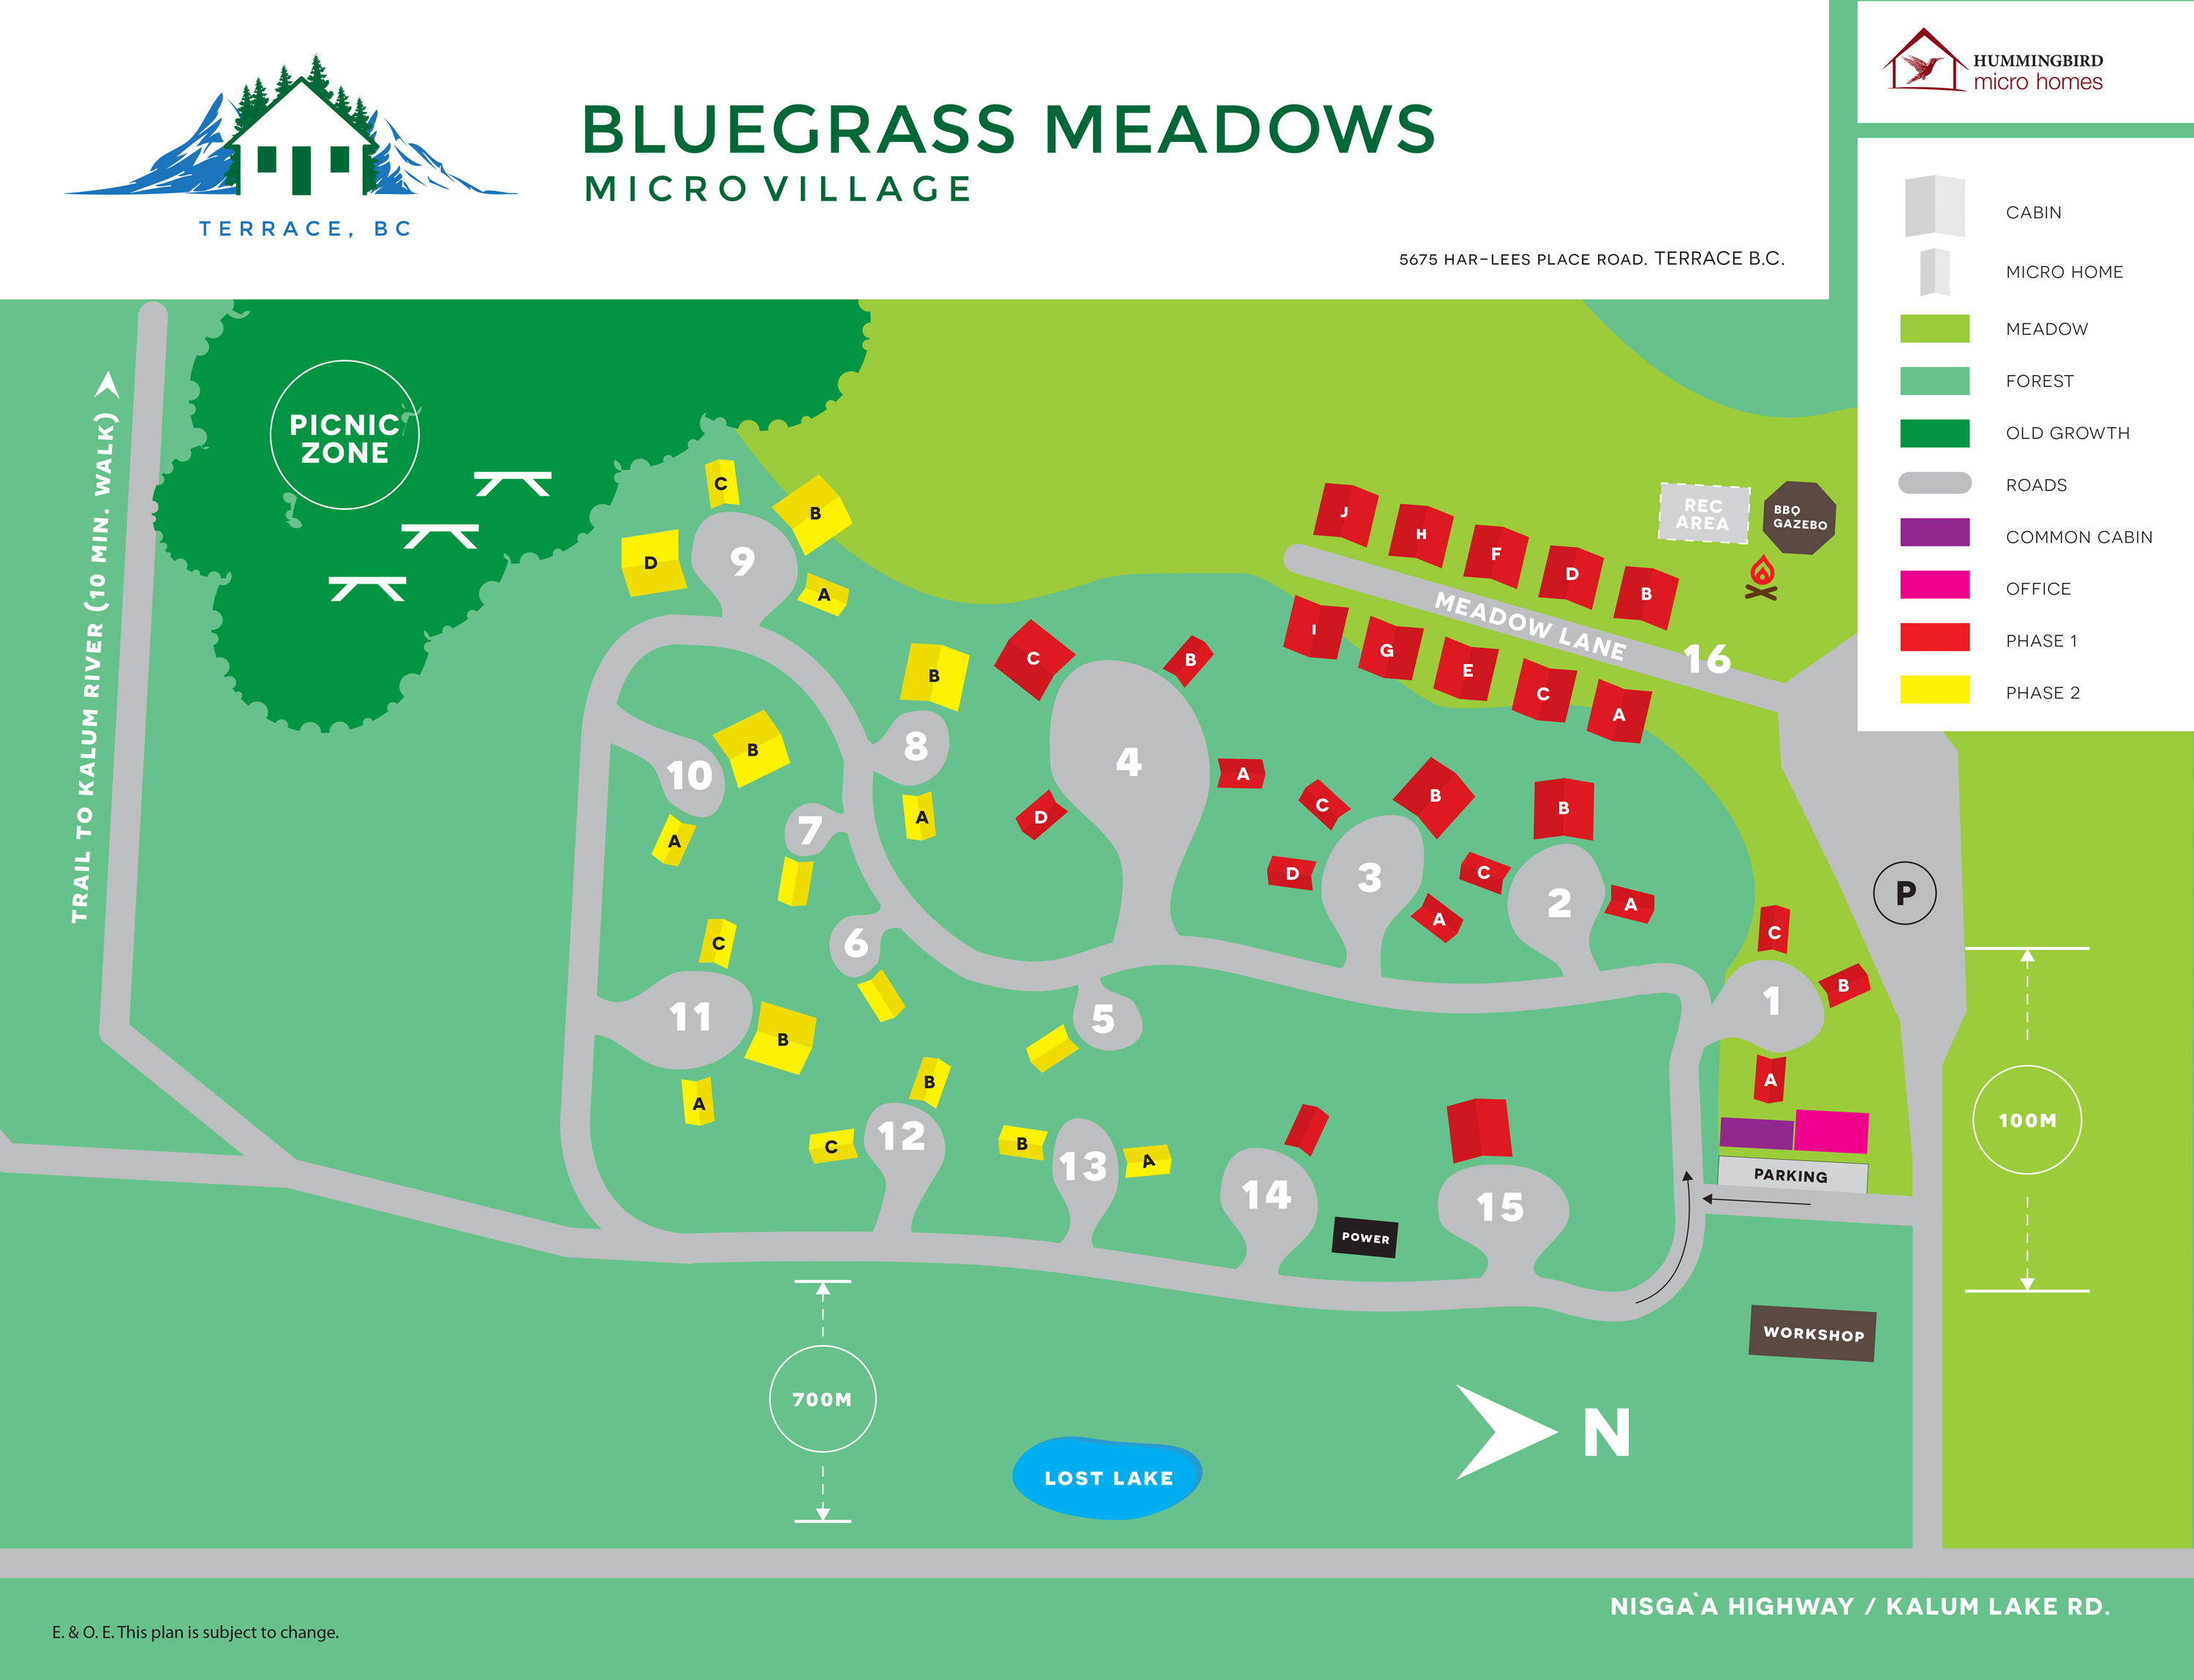 Bluegrass Meadow: Description and Use 29